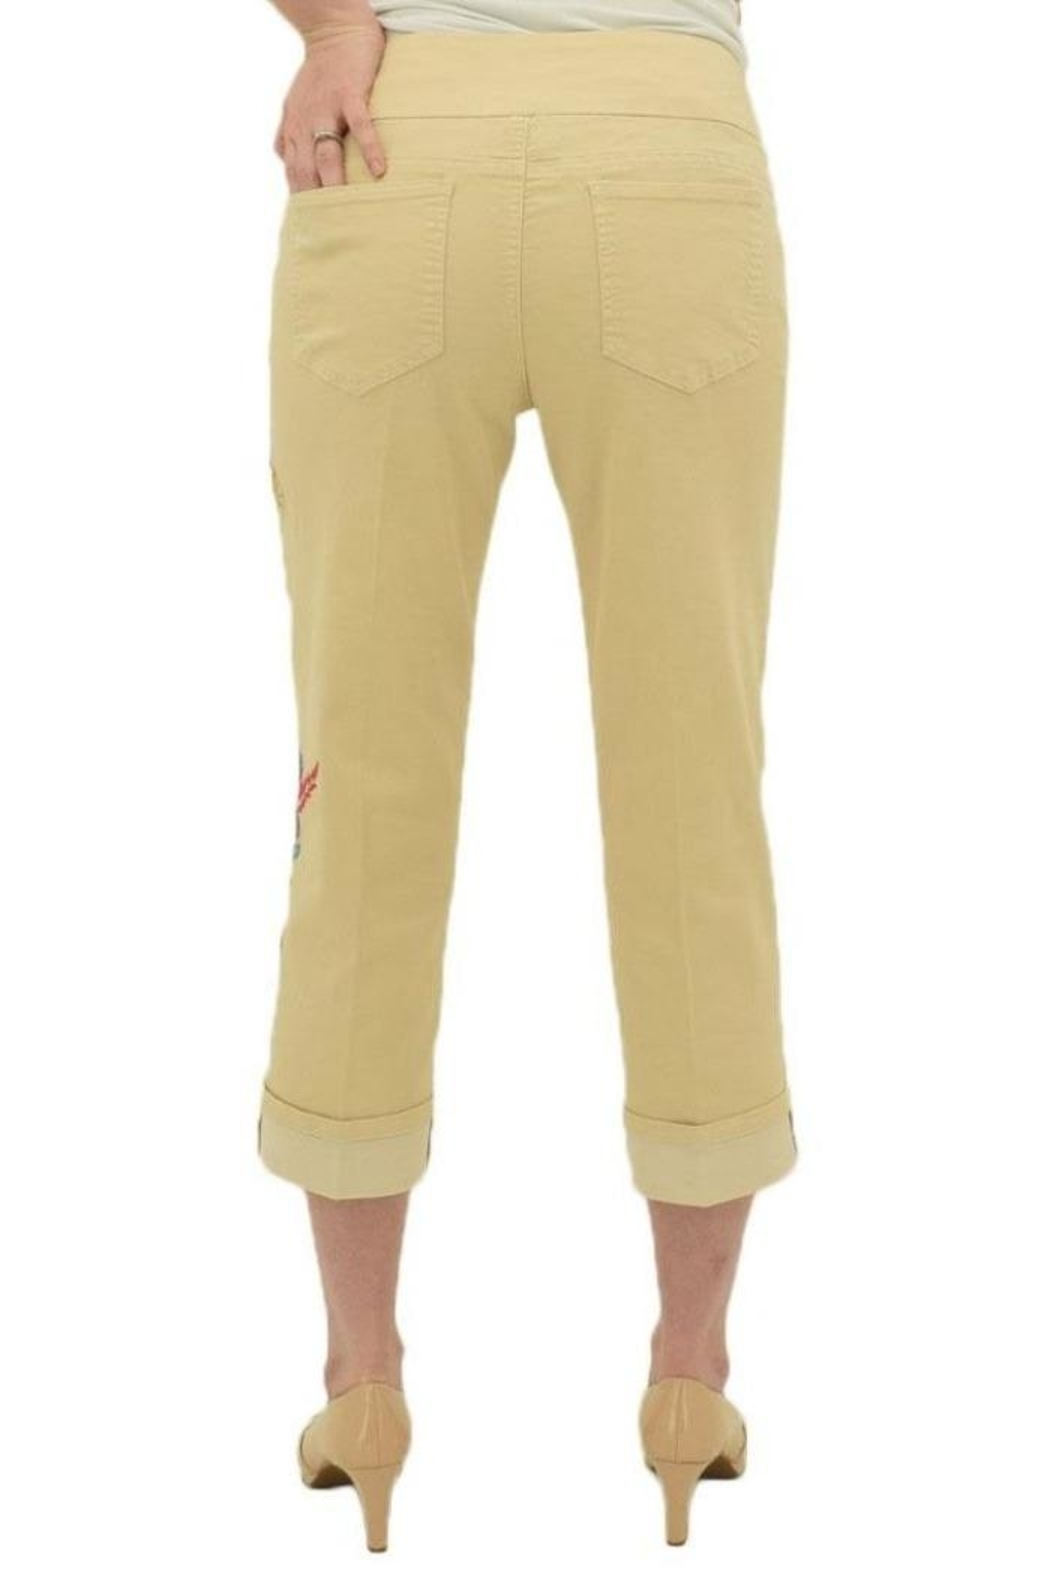 Multiples Embroidered Crop Pants - Front Full Image